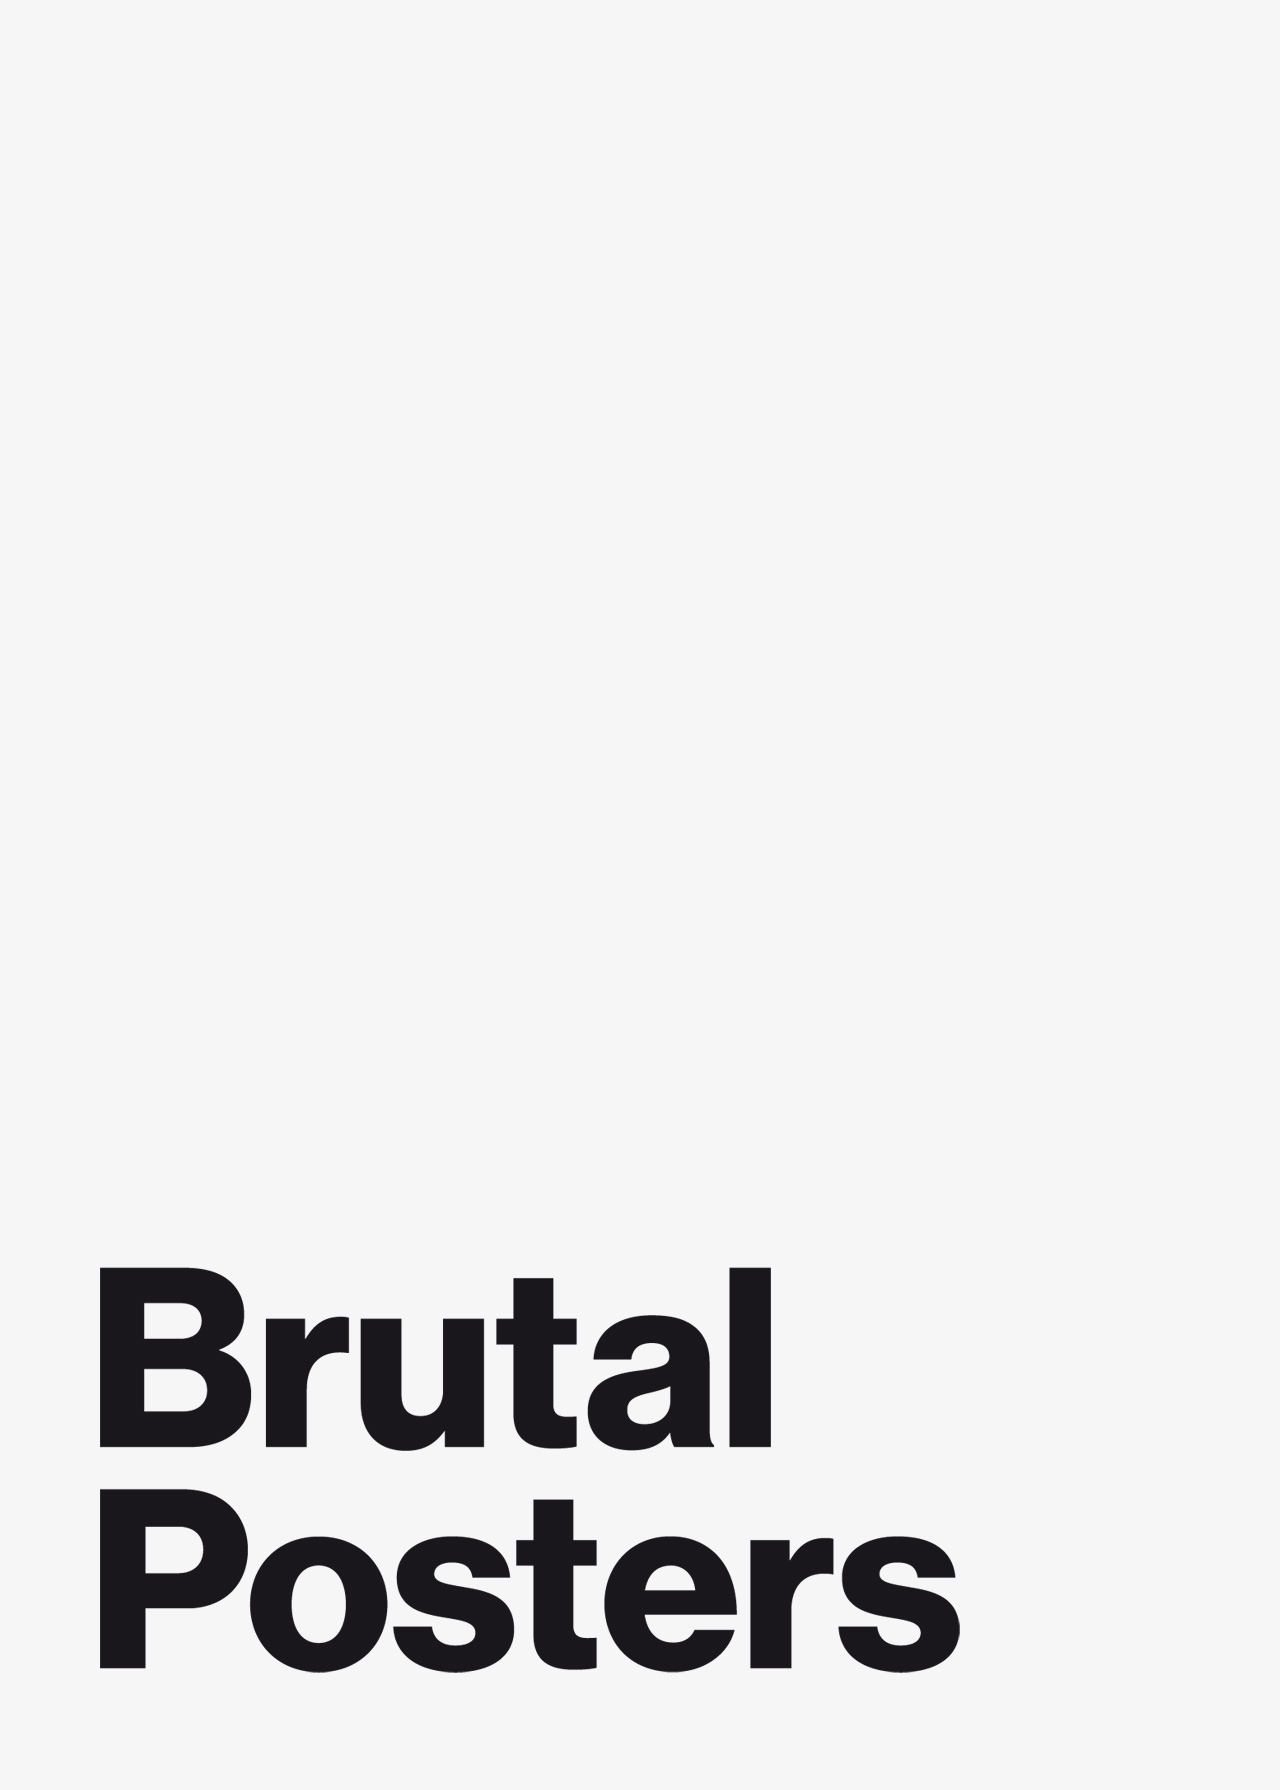 Brutal Posters thumb